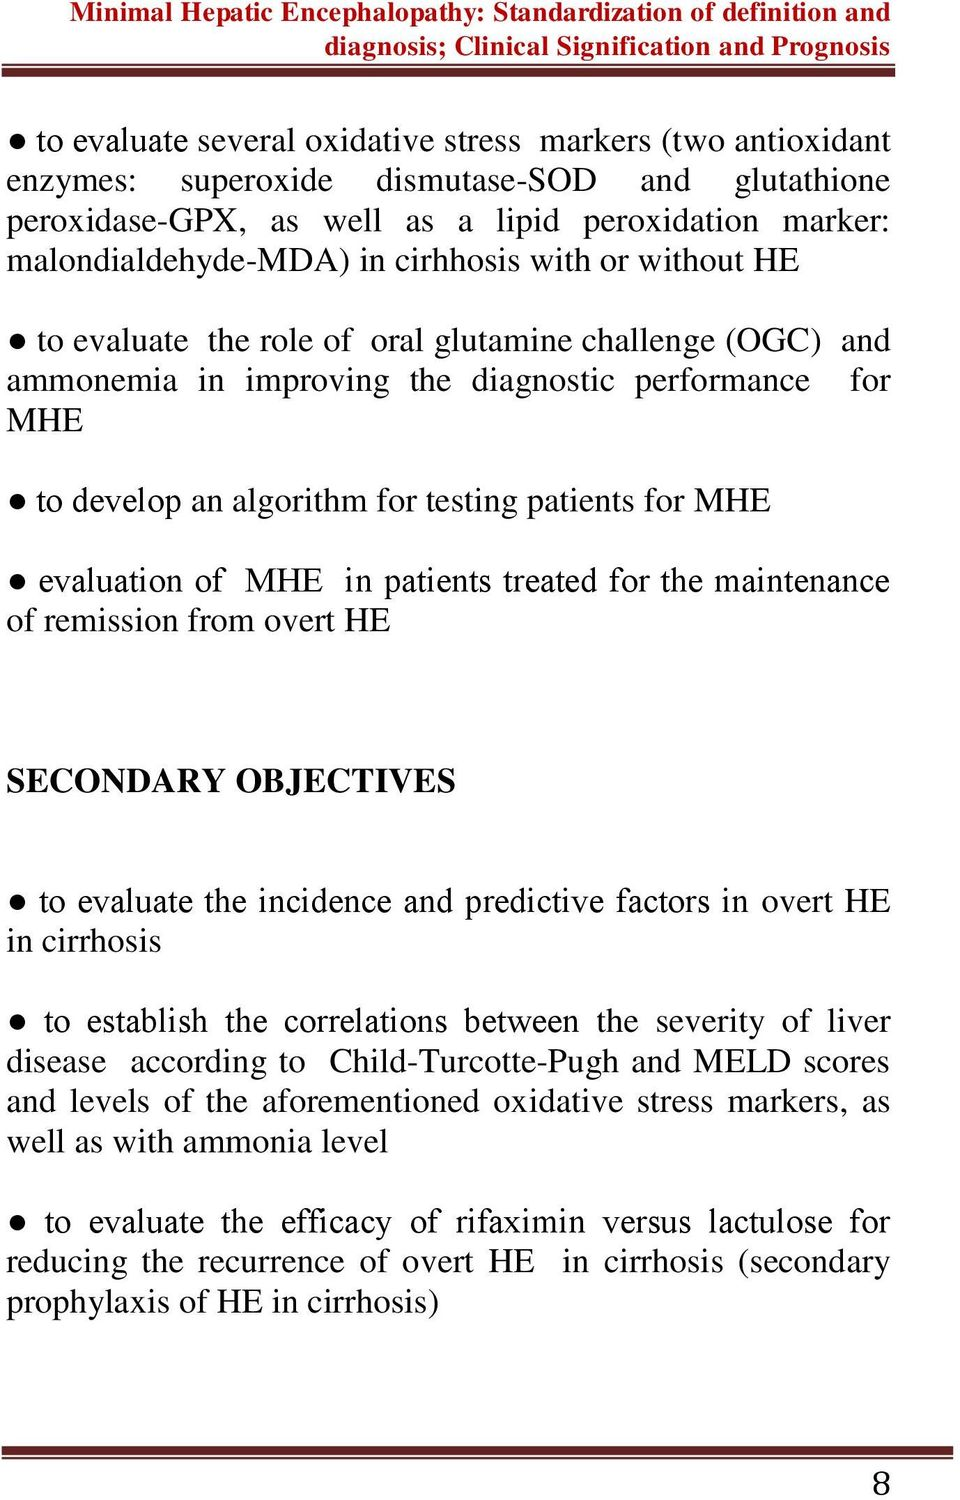 evaluation of MHE in patients treated for the maintenance of remission from overt HE SECONDARY OBJECTIVES to evaluate the incidence and predictive factors in overt HE in cirrhosis to establish the